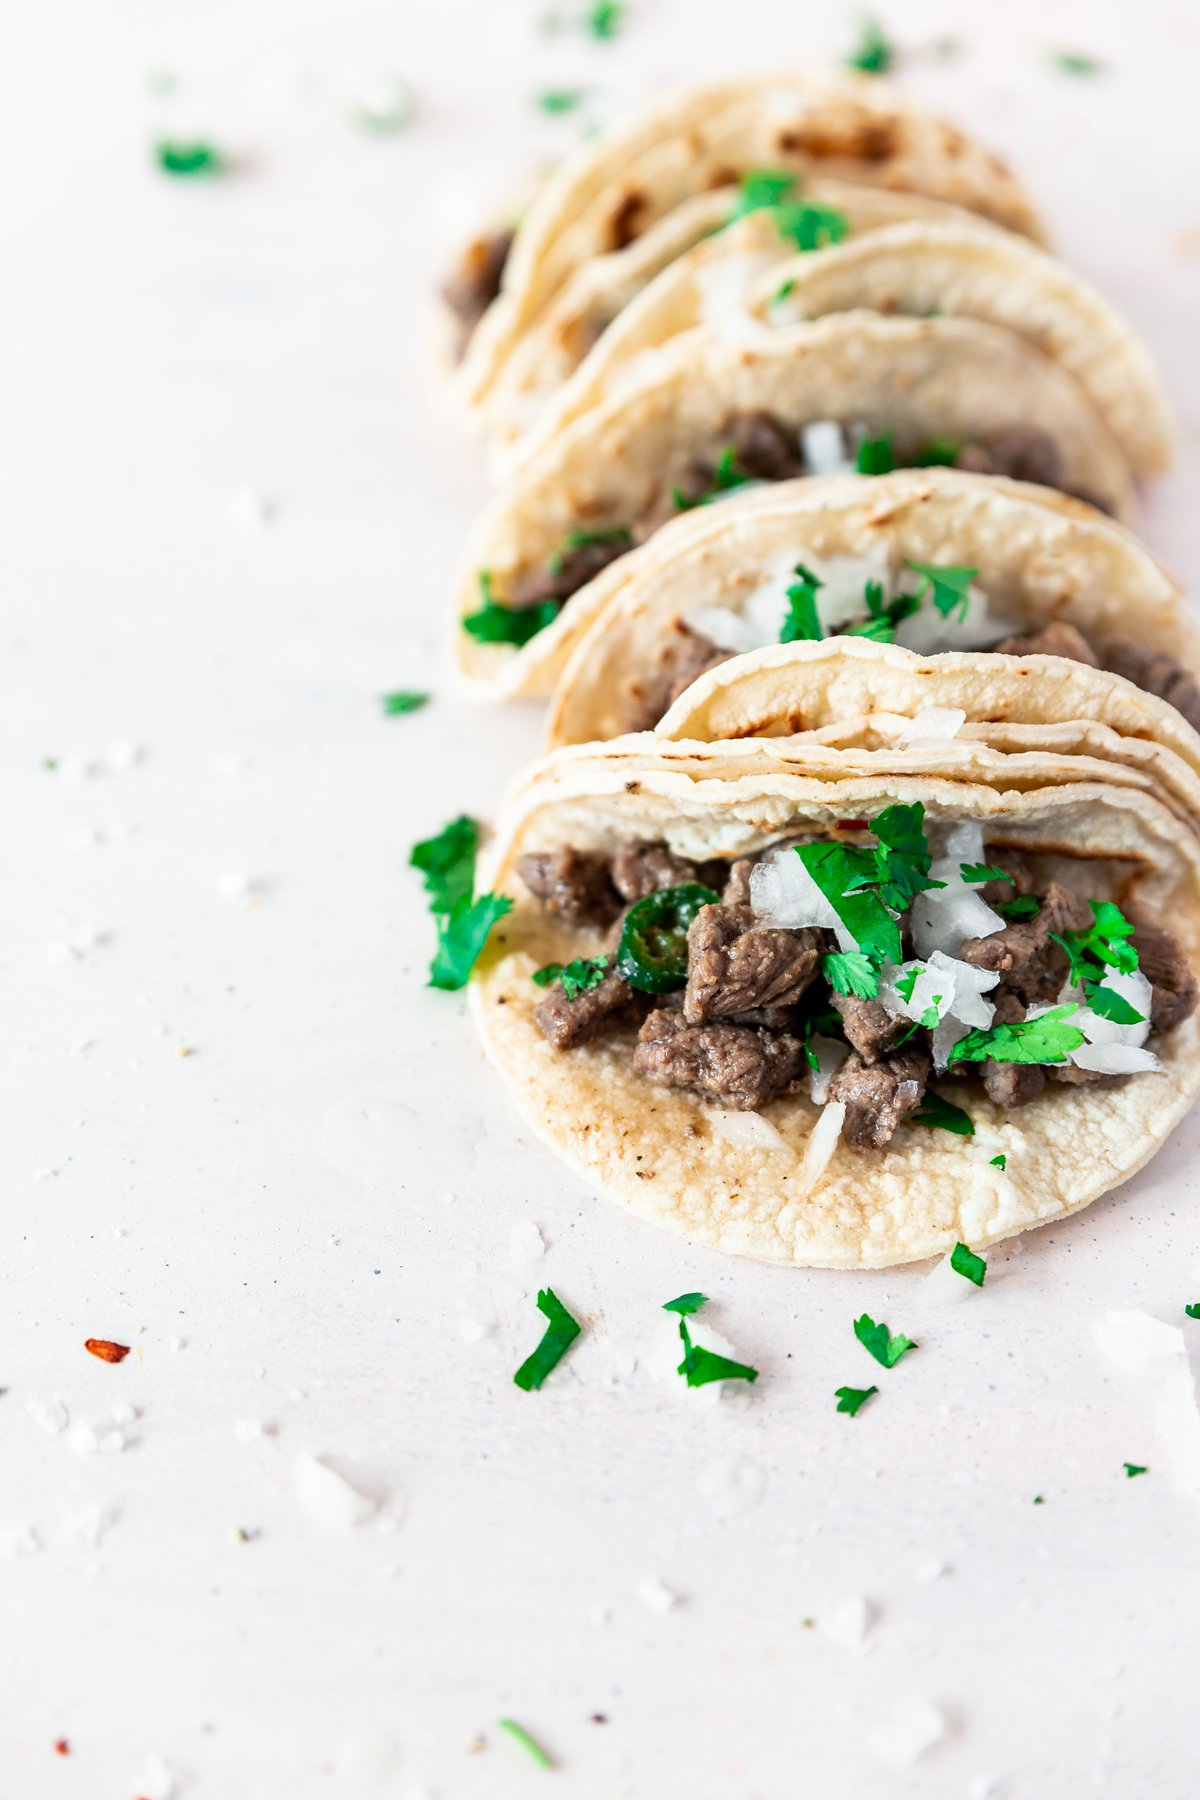 angled view of carne asada mexican street tacos with a double layer of corn tortillas sprinkled with cilantro and onion